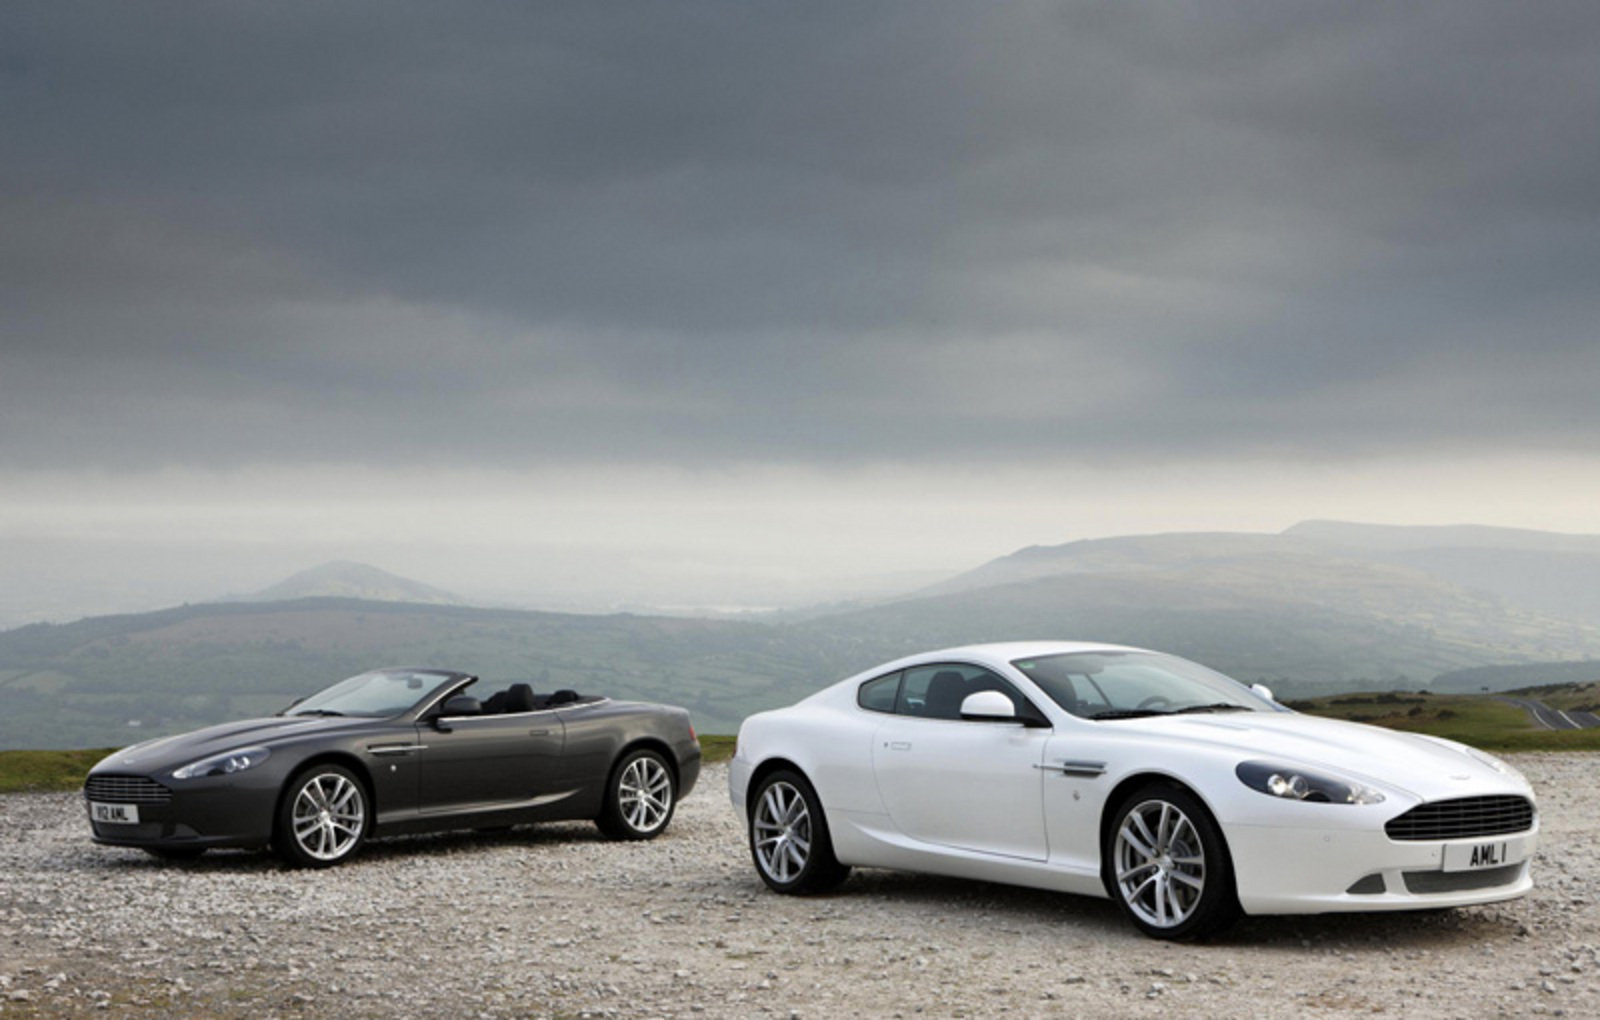 aston-martin db9 reviews, specs, prices, photos and videos | top speed